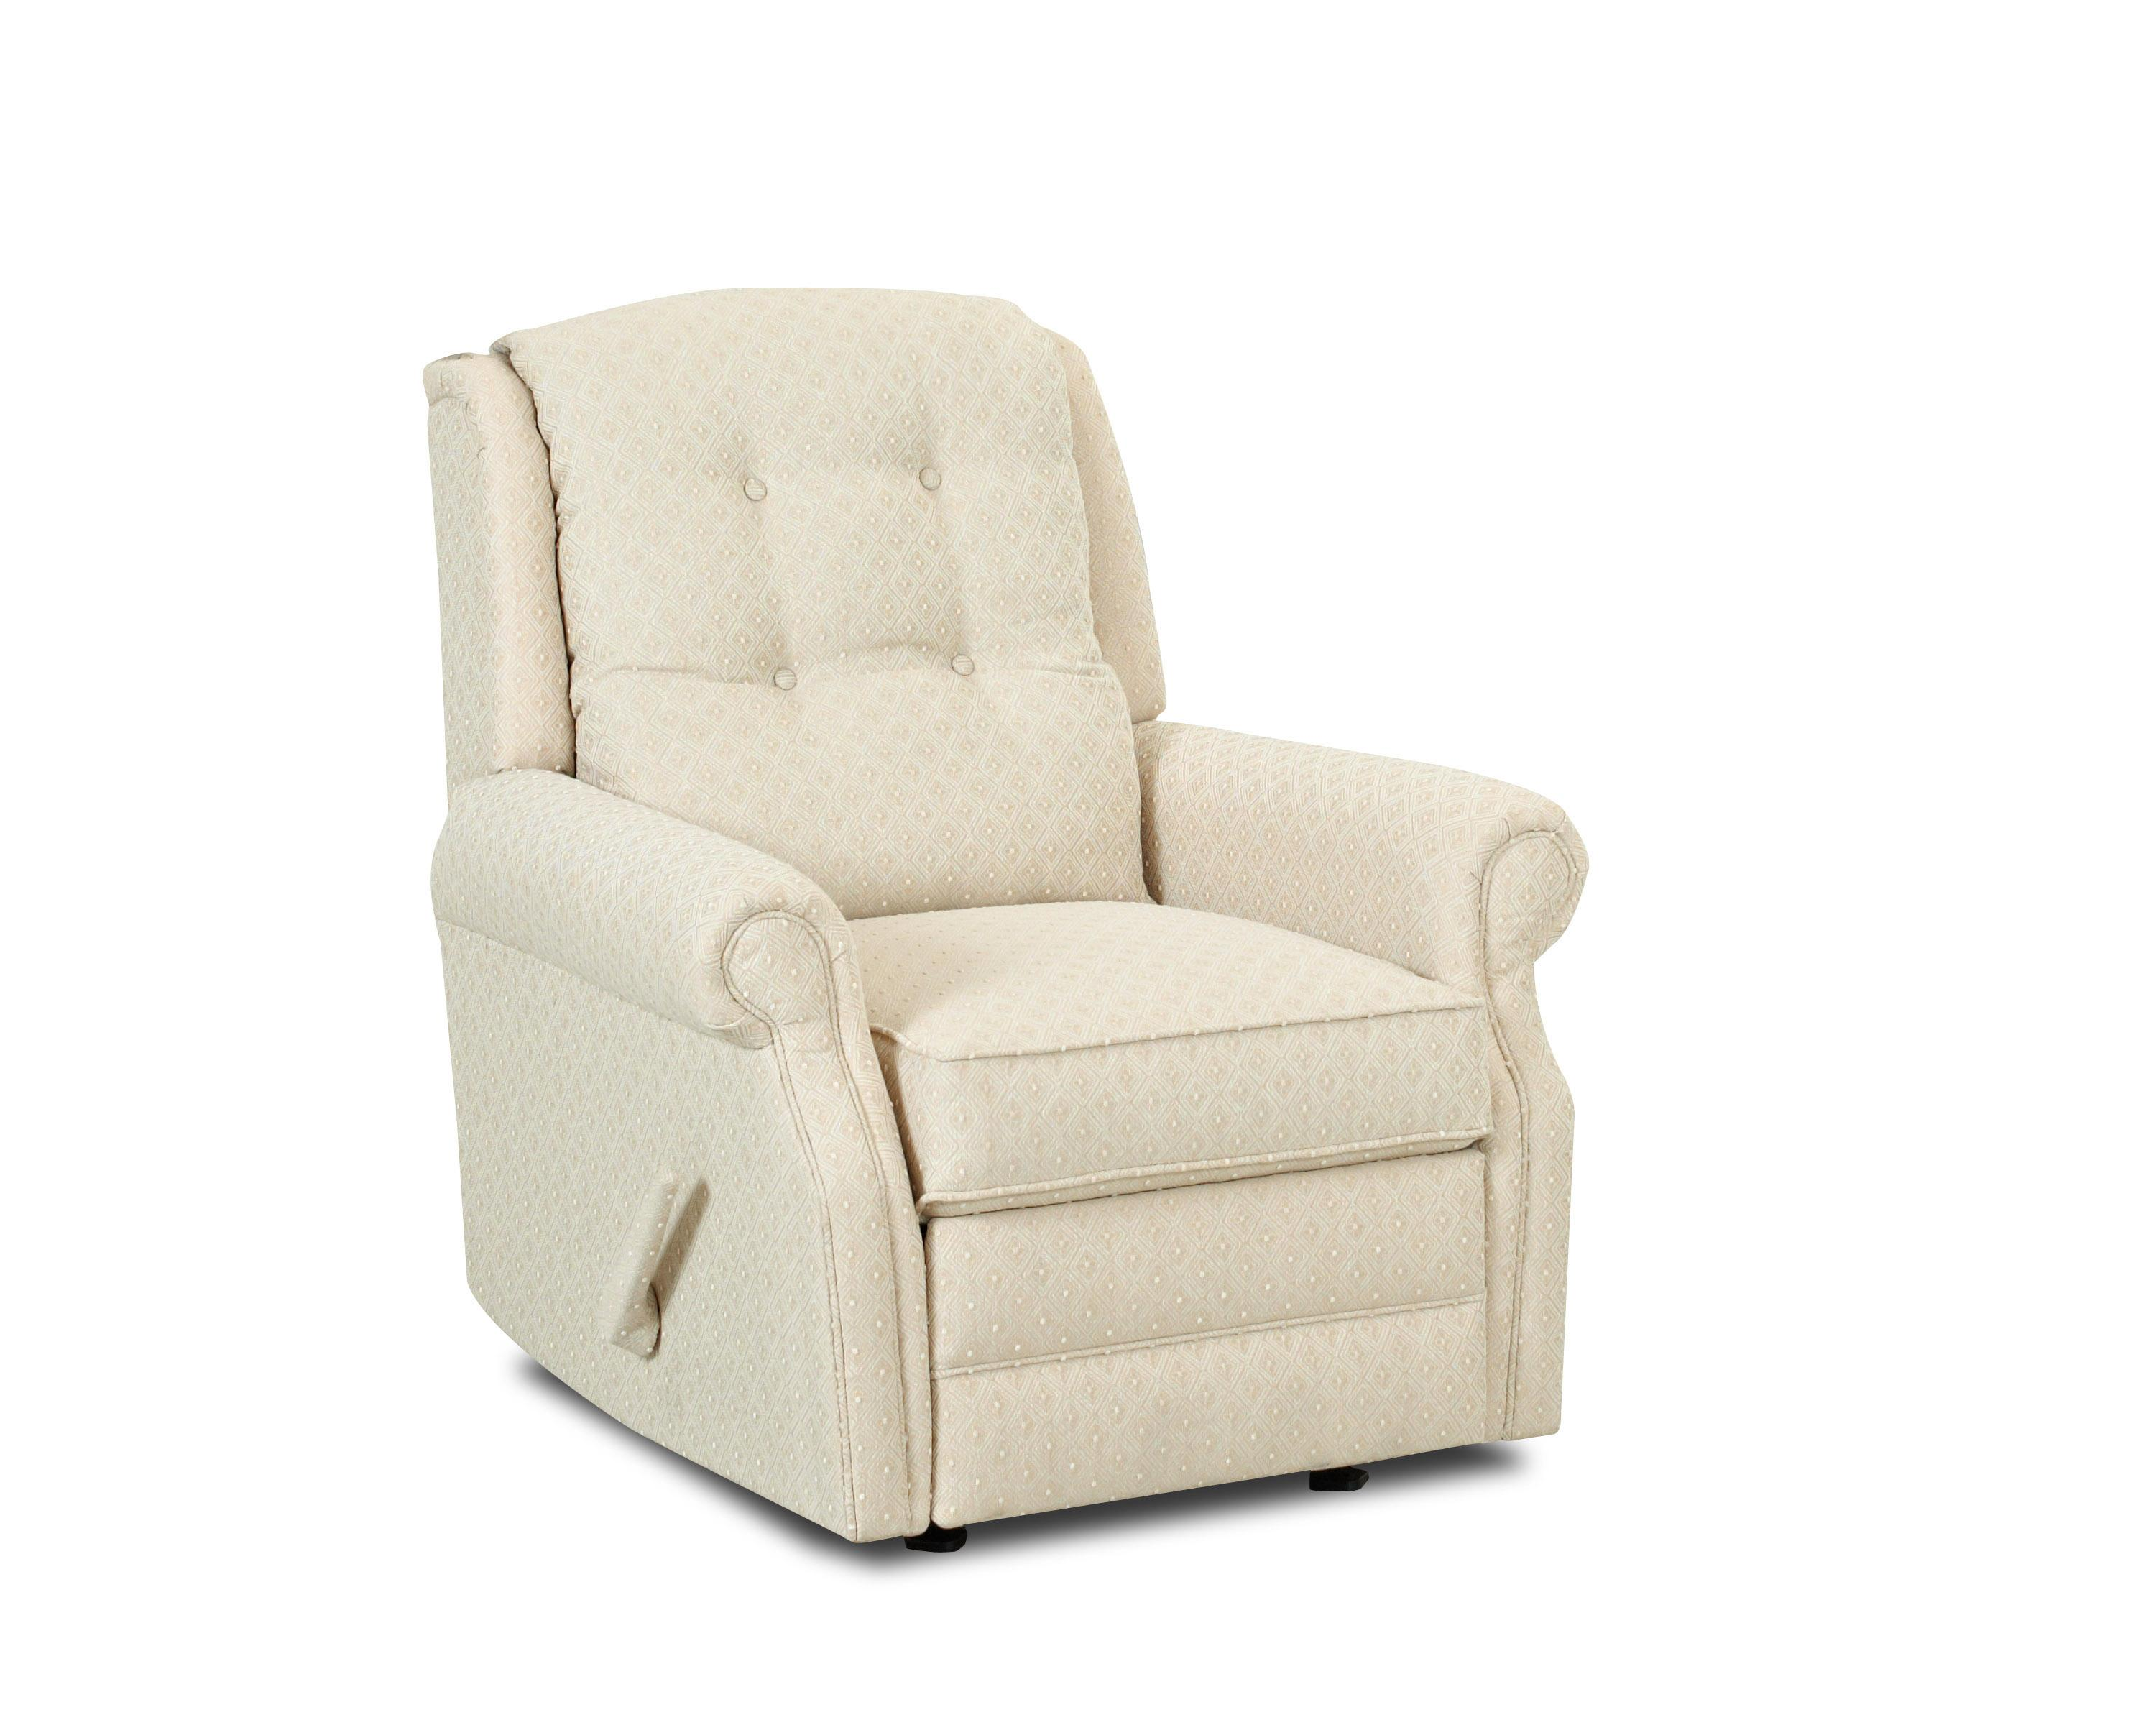 ... Transitional Manual Swivel Rocking Reclining Chair with Button Tufting